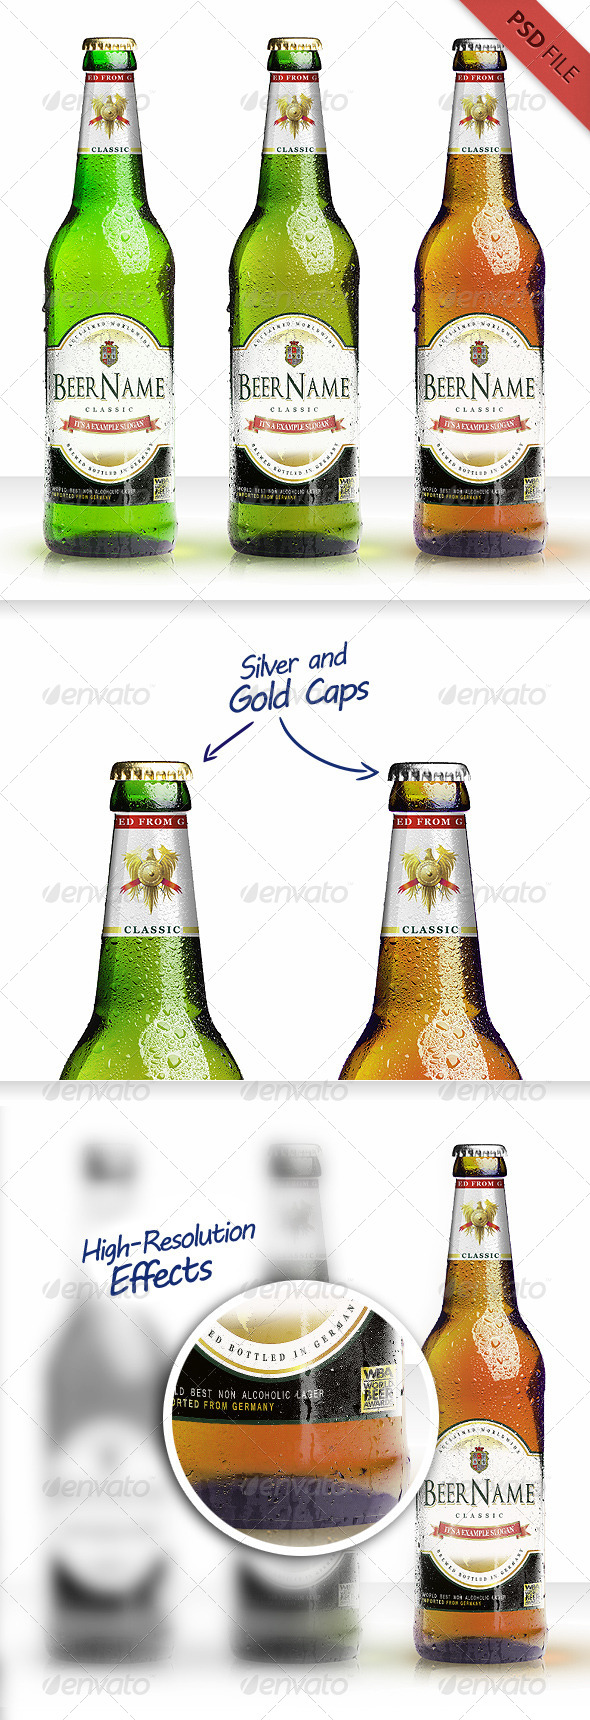 Realistic Beer Bottle Mockup